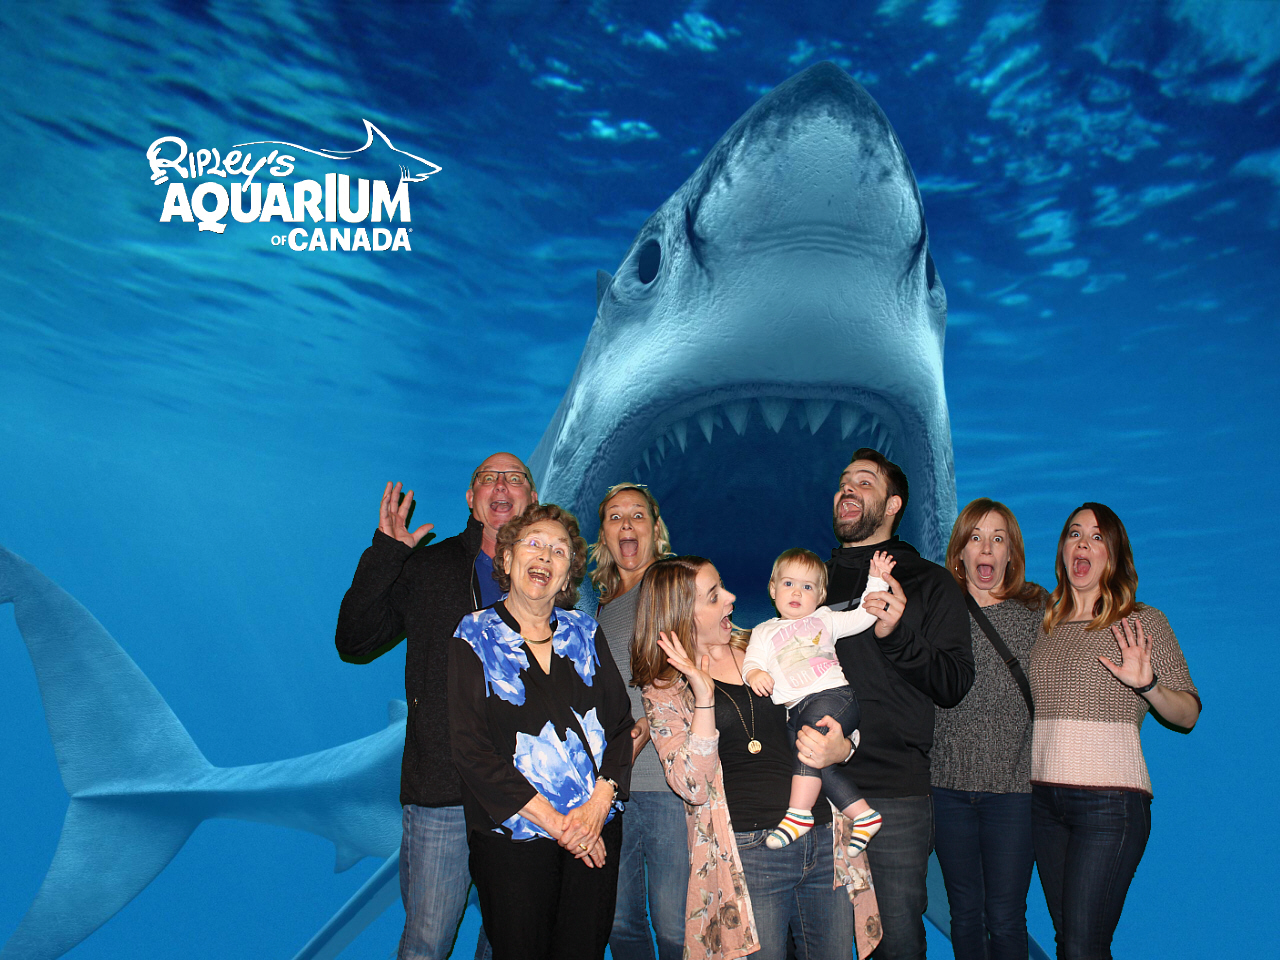 Celebrating Morley's 1st Birthday at Ripley's Aquarium of Canada